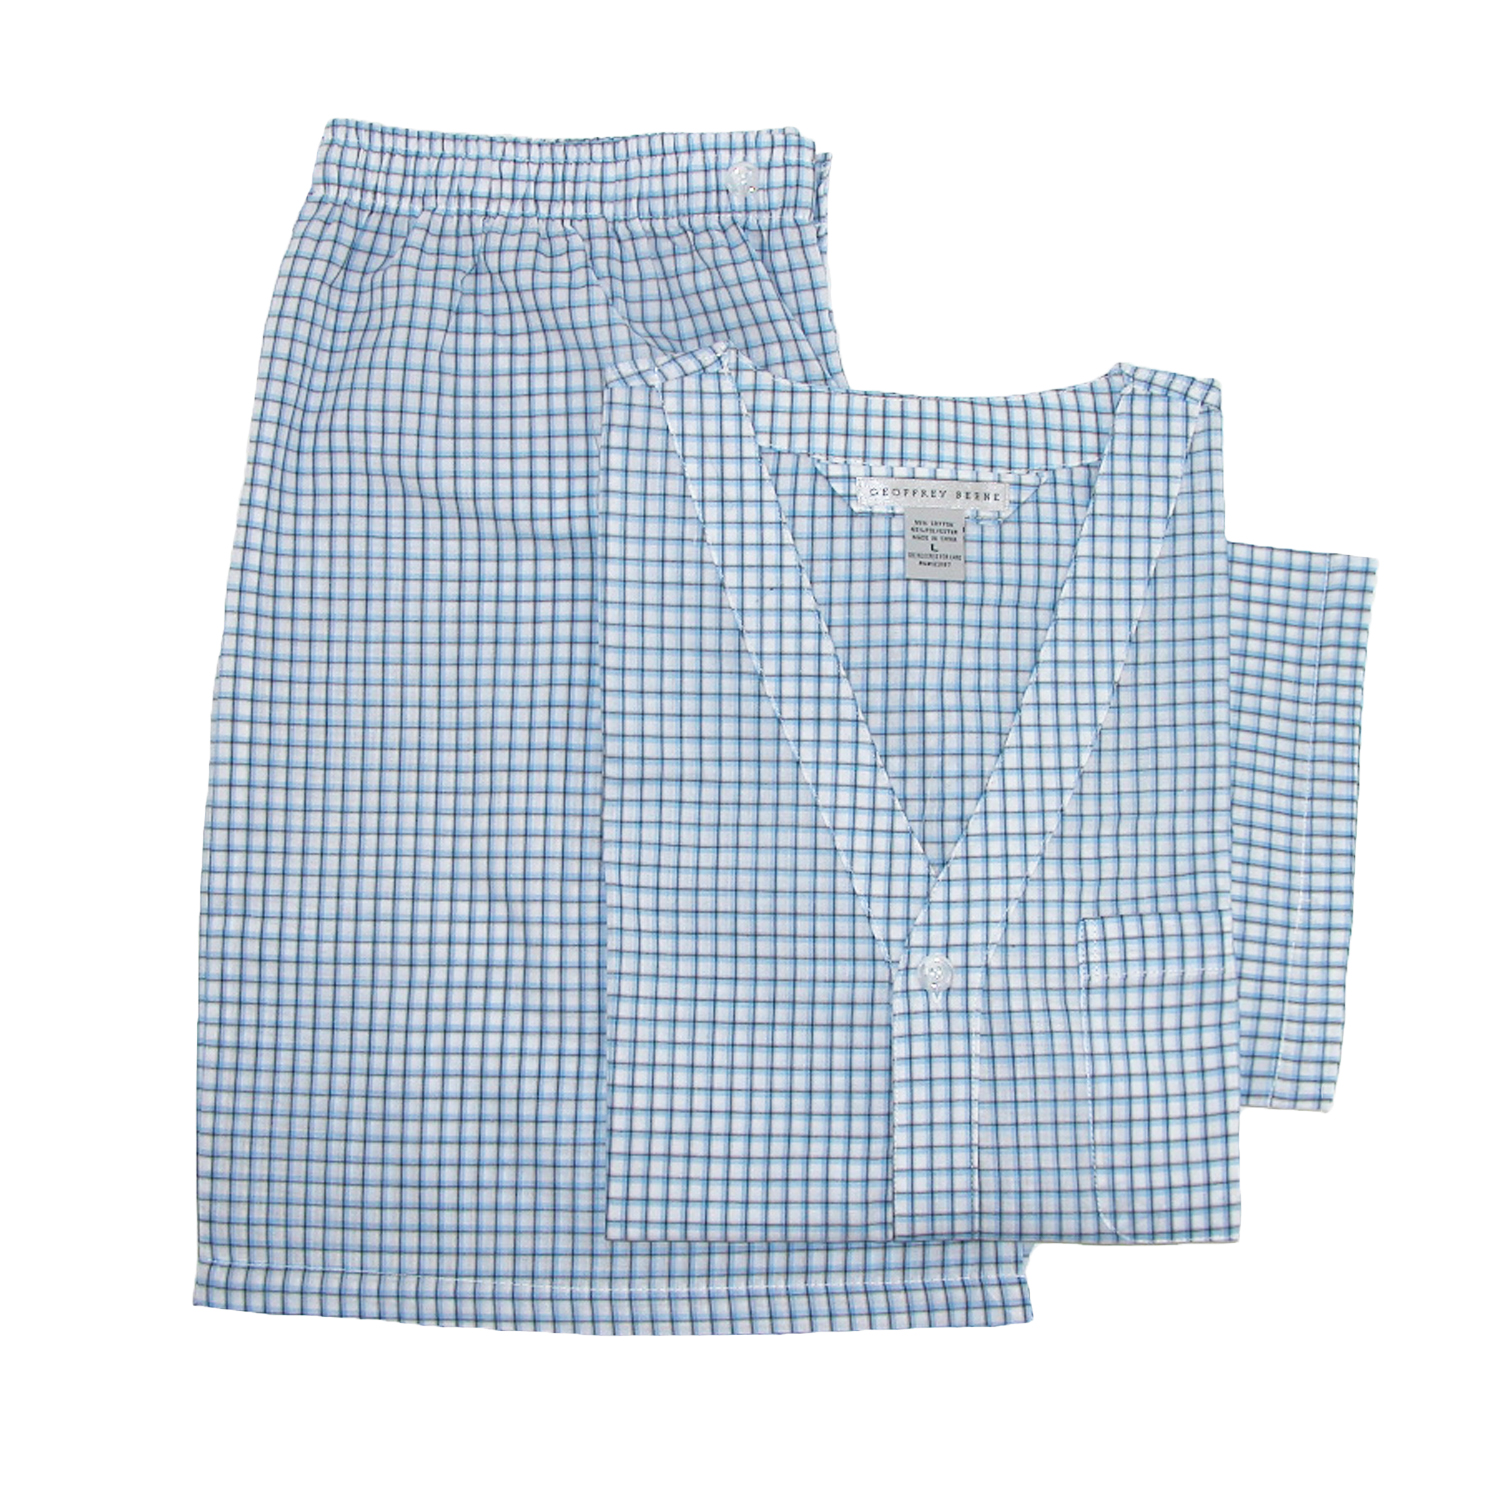 Geoffrey Beene Size 4X Mens Big & Tall Short Sleeve Knee Length Pajama Set, Blue Checks